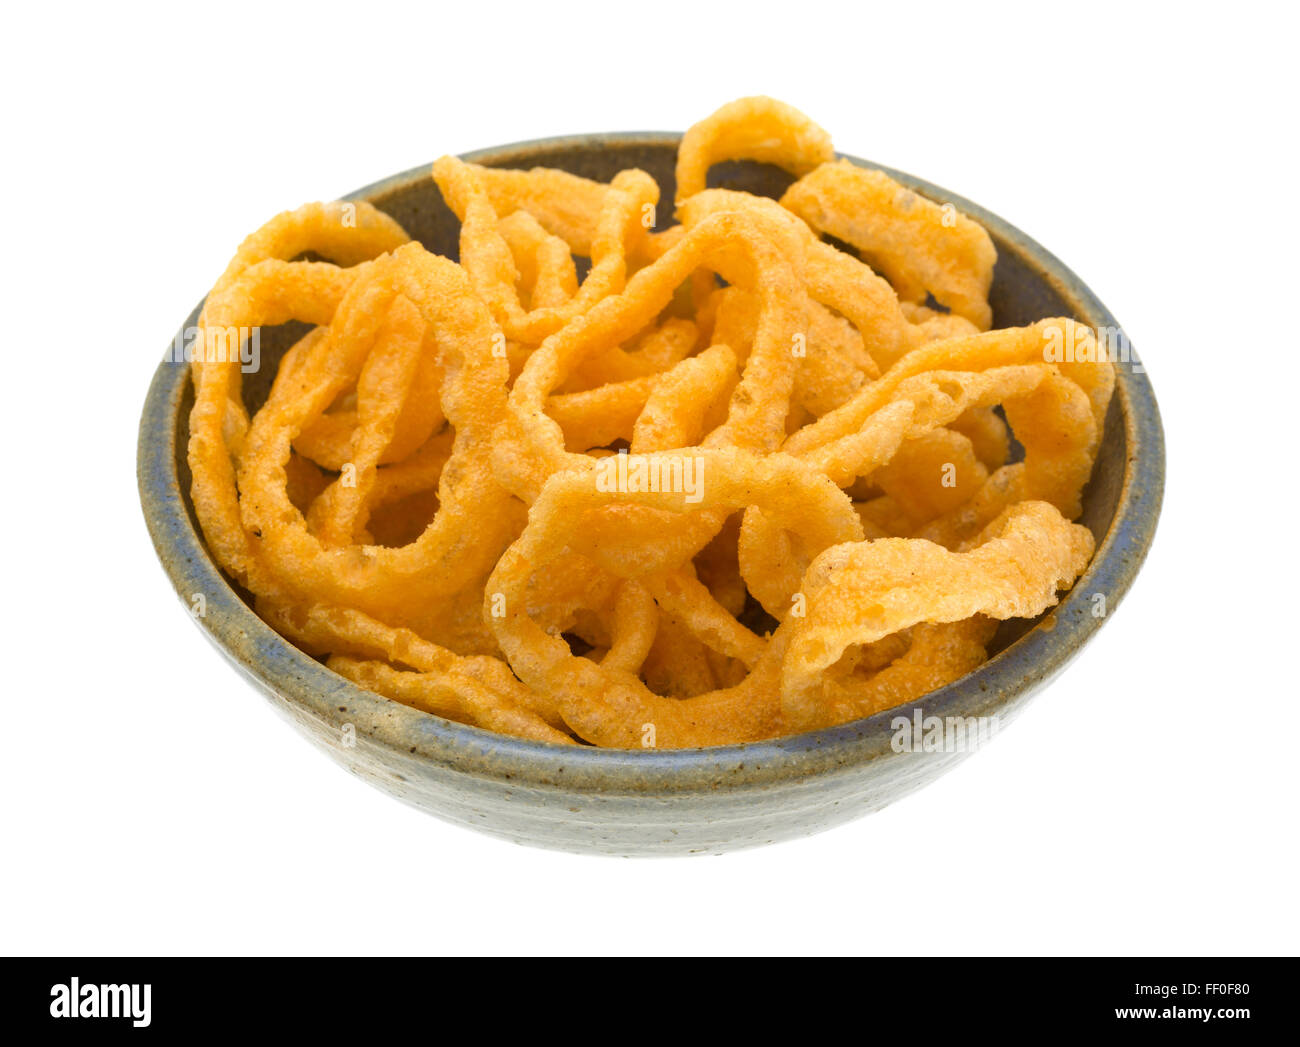 Side view of a large serving of crunchy onion rings in an old stoneware bowl isolated on a white background. - Stock Image